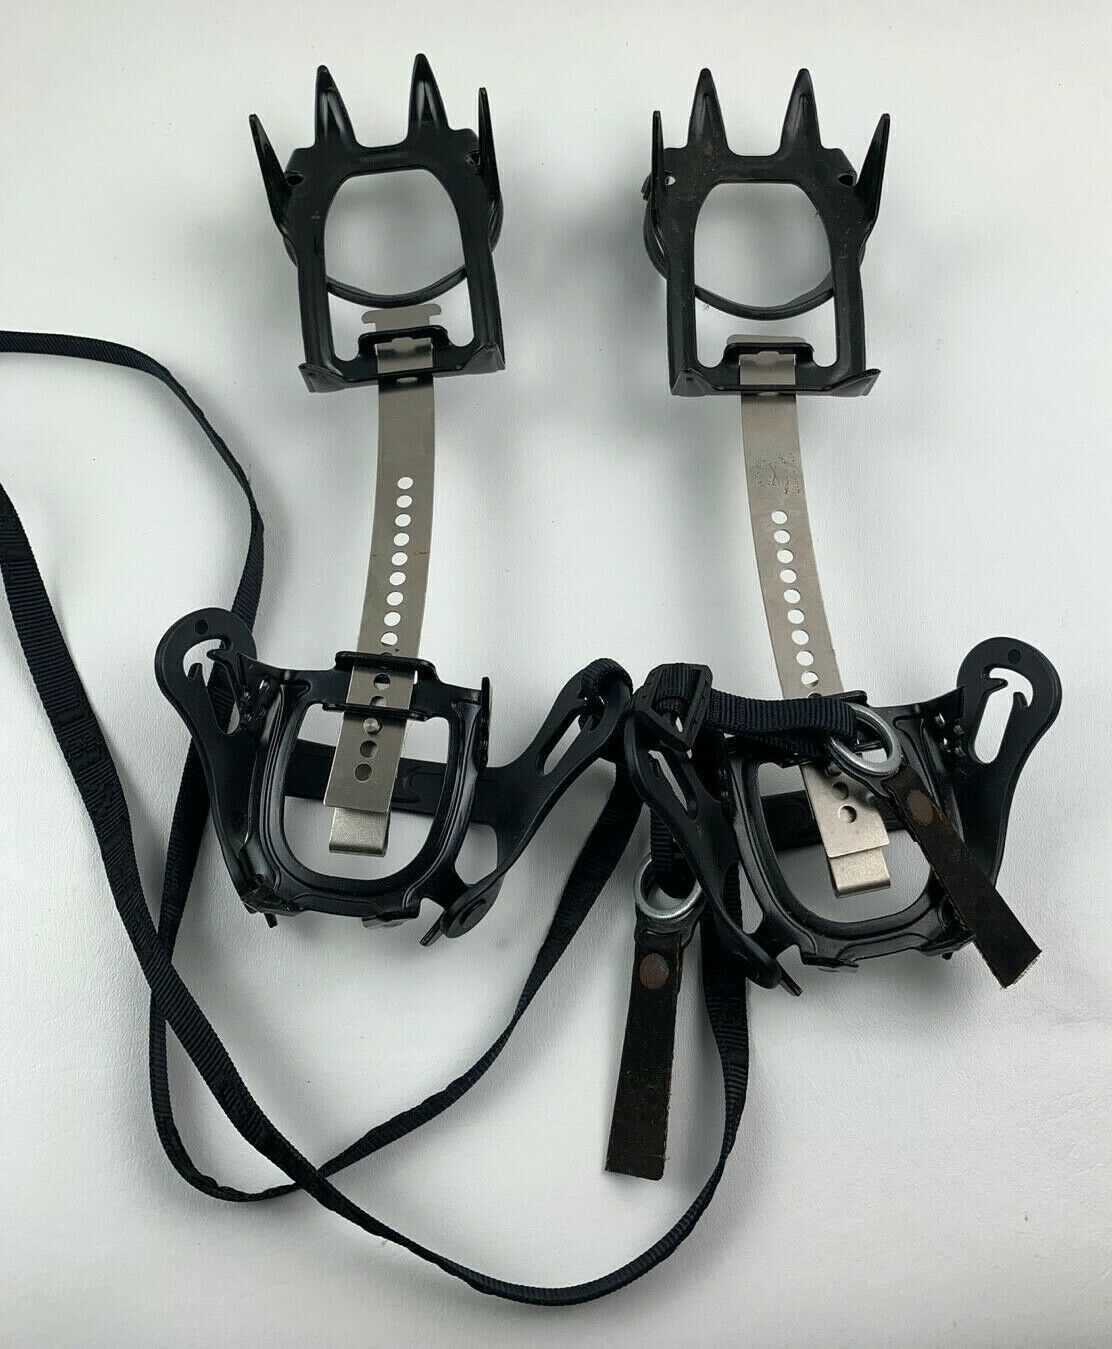 Grivel G10 New Classic Color Black